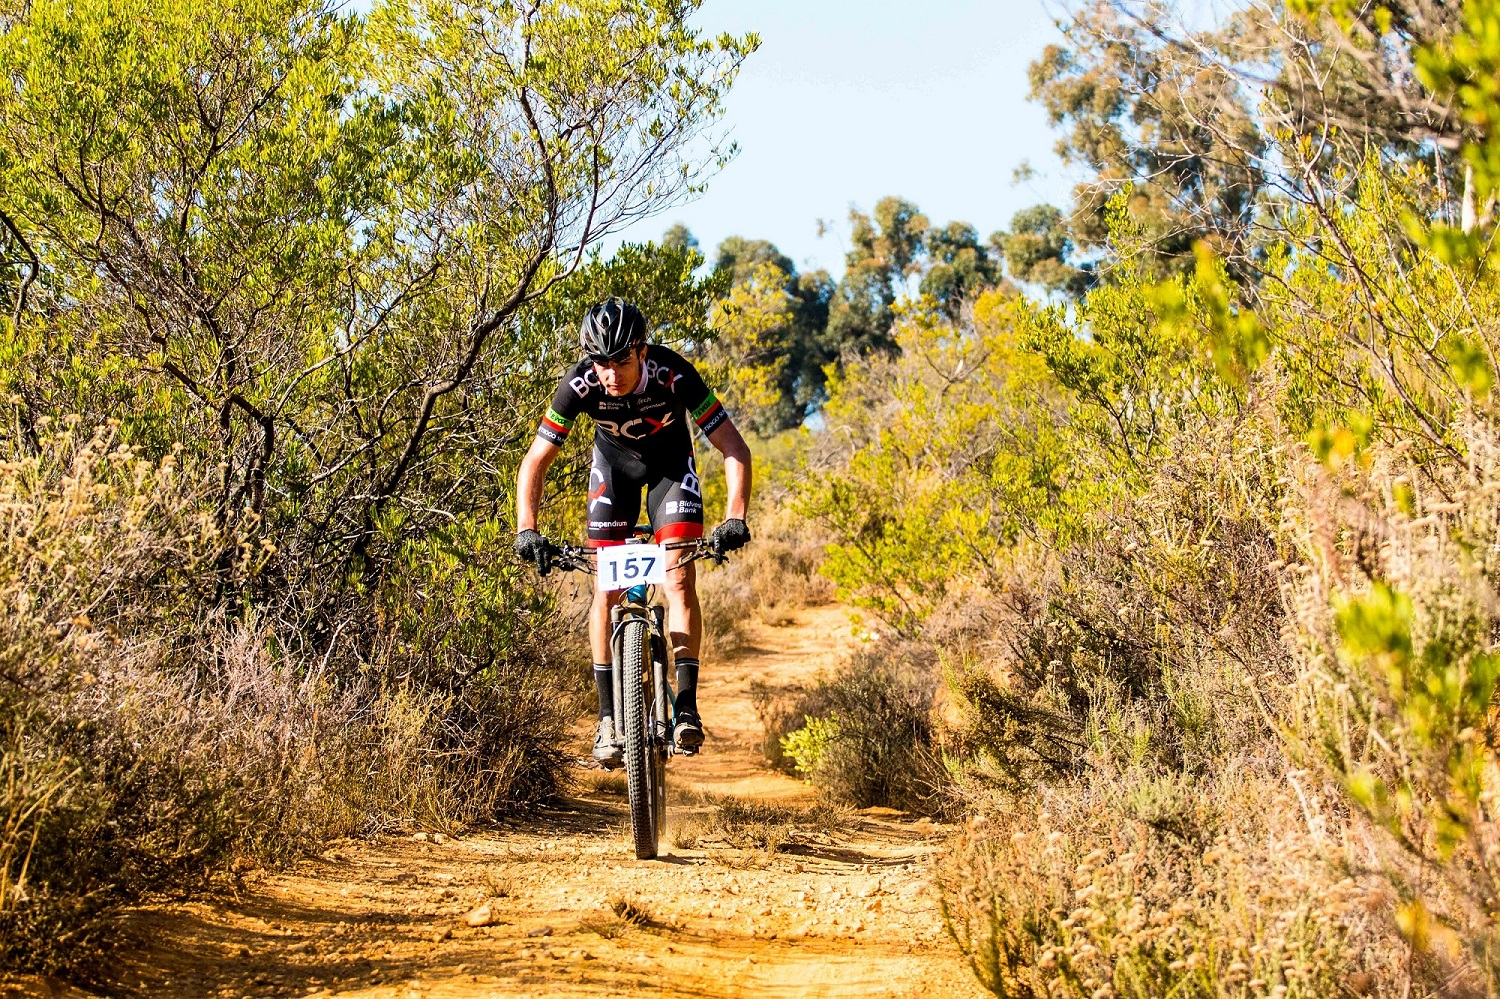 Hb Kruger And Carmen Buchacher Dominate In Paarl Mtb Classic photo